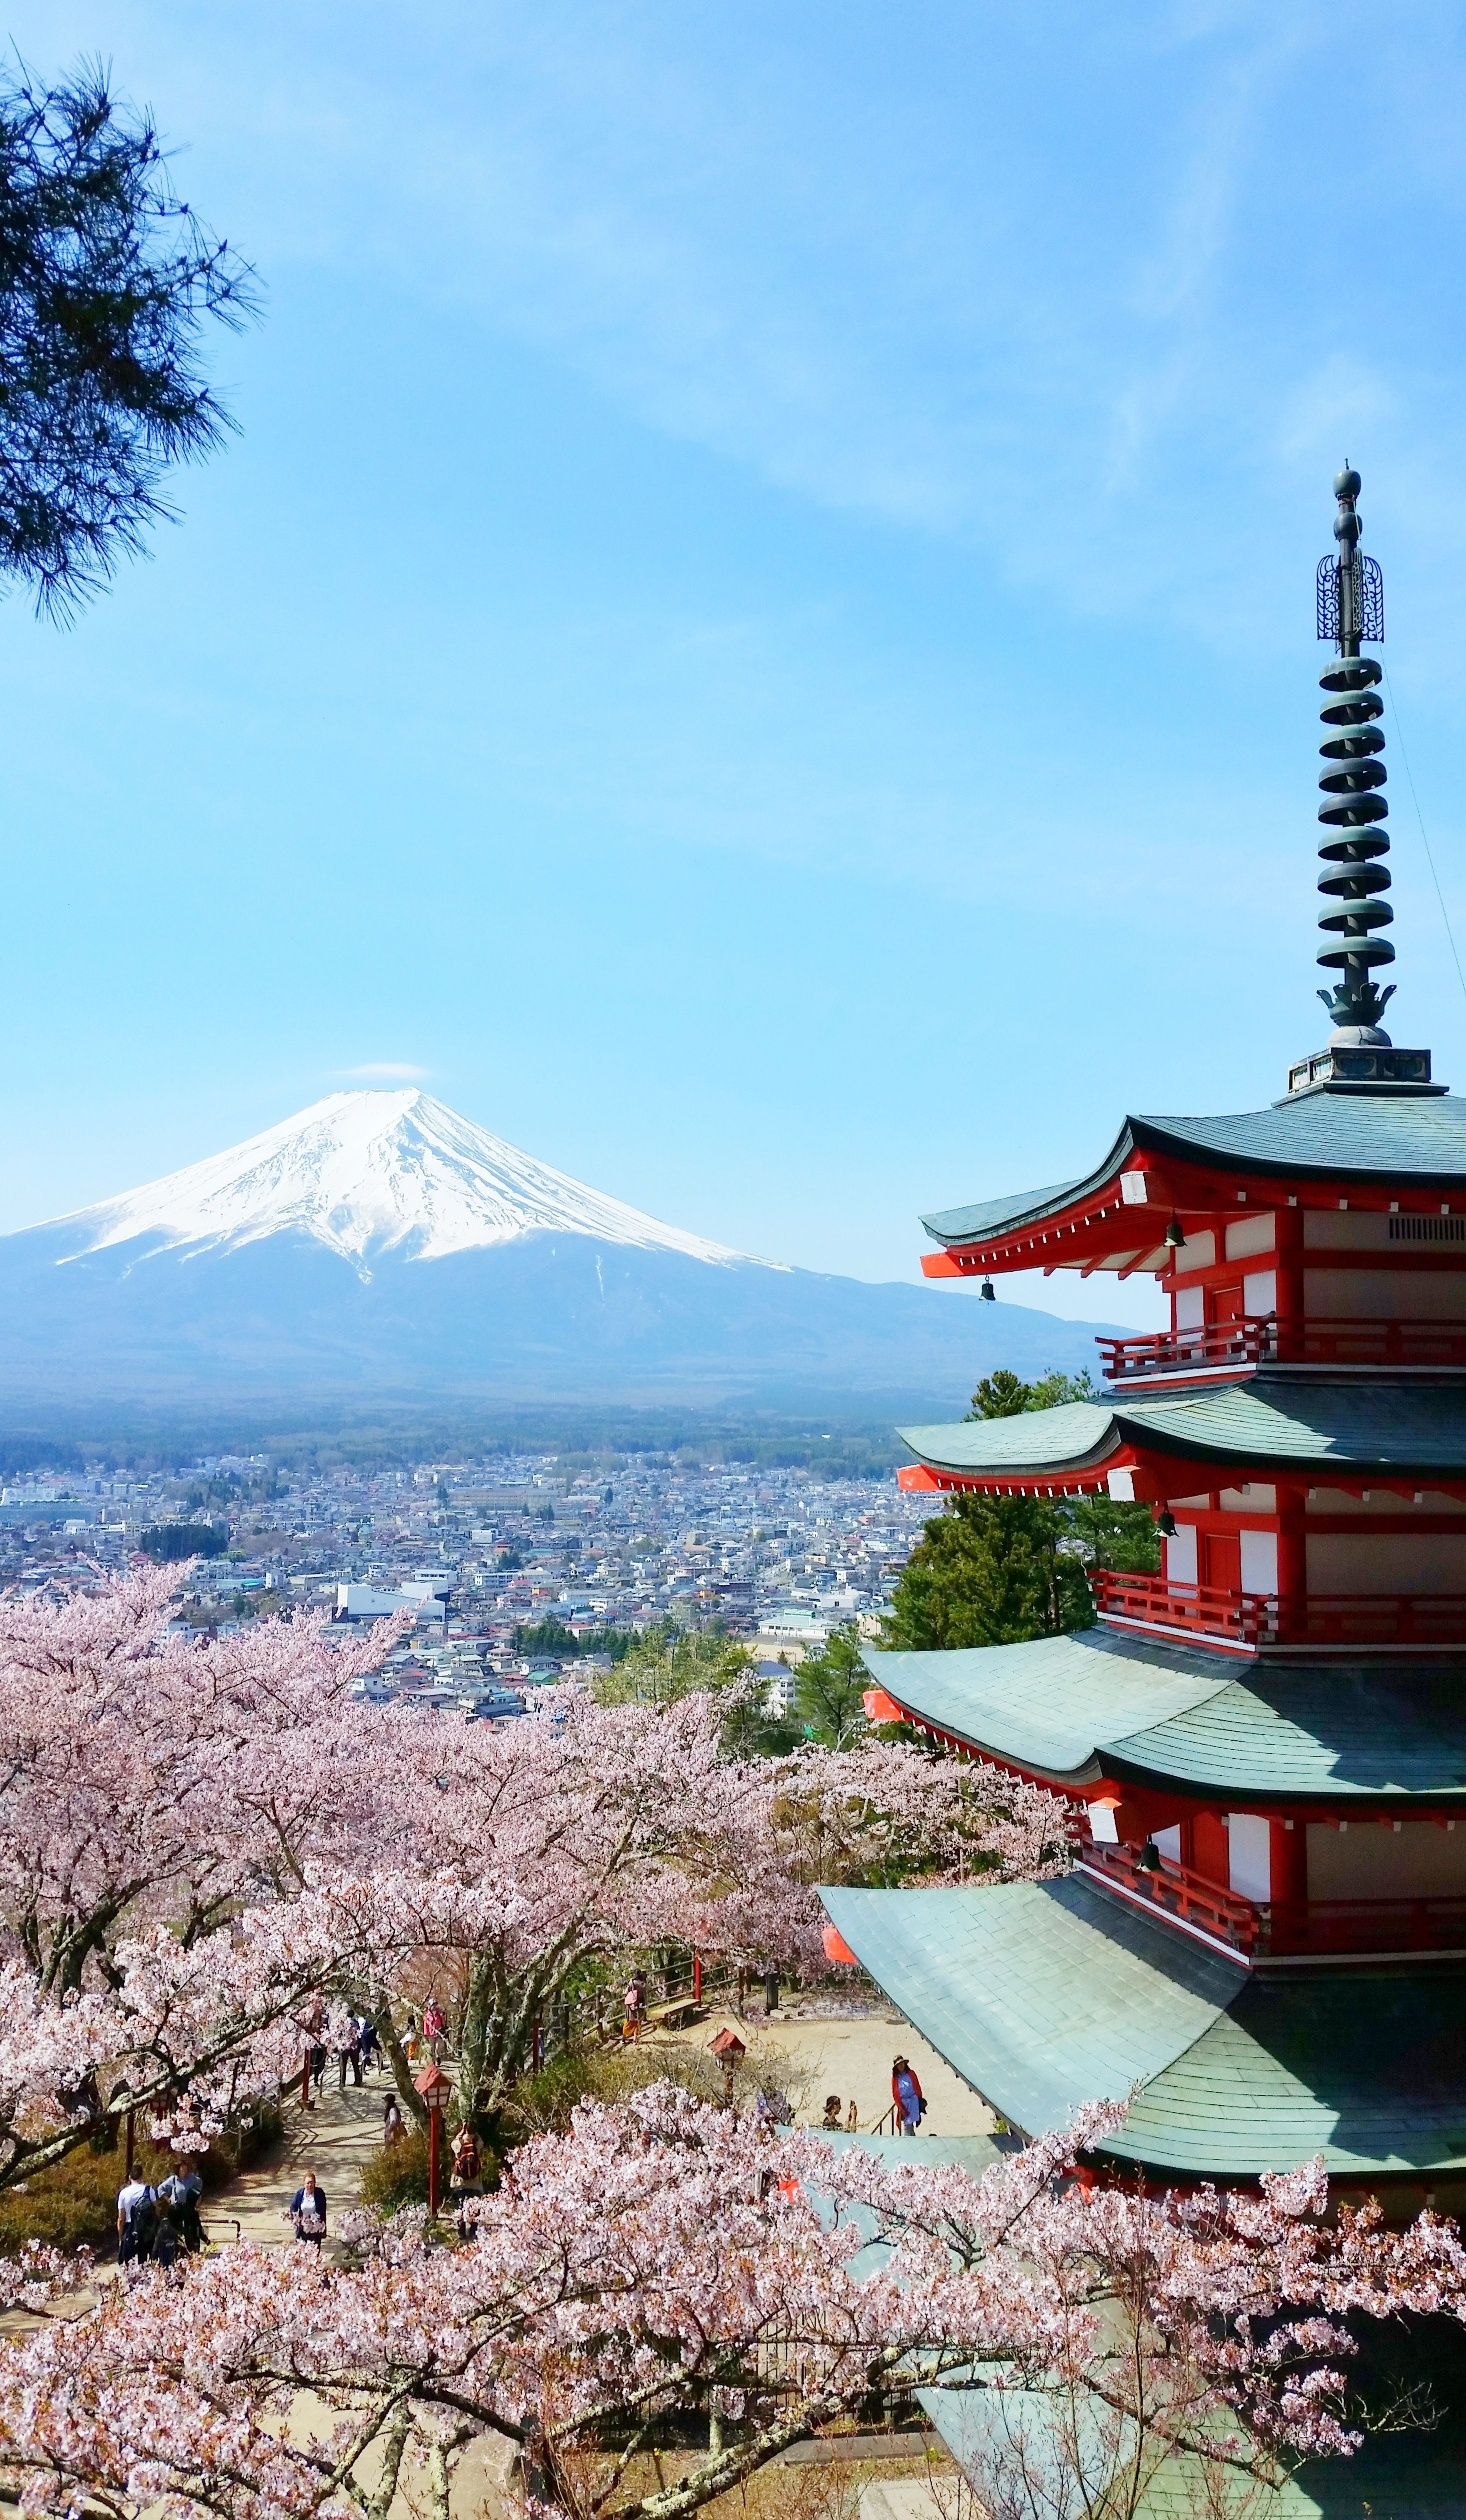 tokyo japan travel destinations. japan travel tips. nature photography. japanese. cherry blossom season. things to do in japan. places to visit in japan. backpacking east asia. world bucket list destinations.